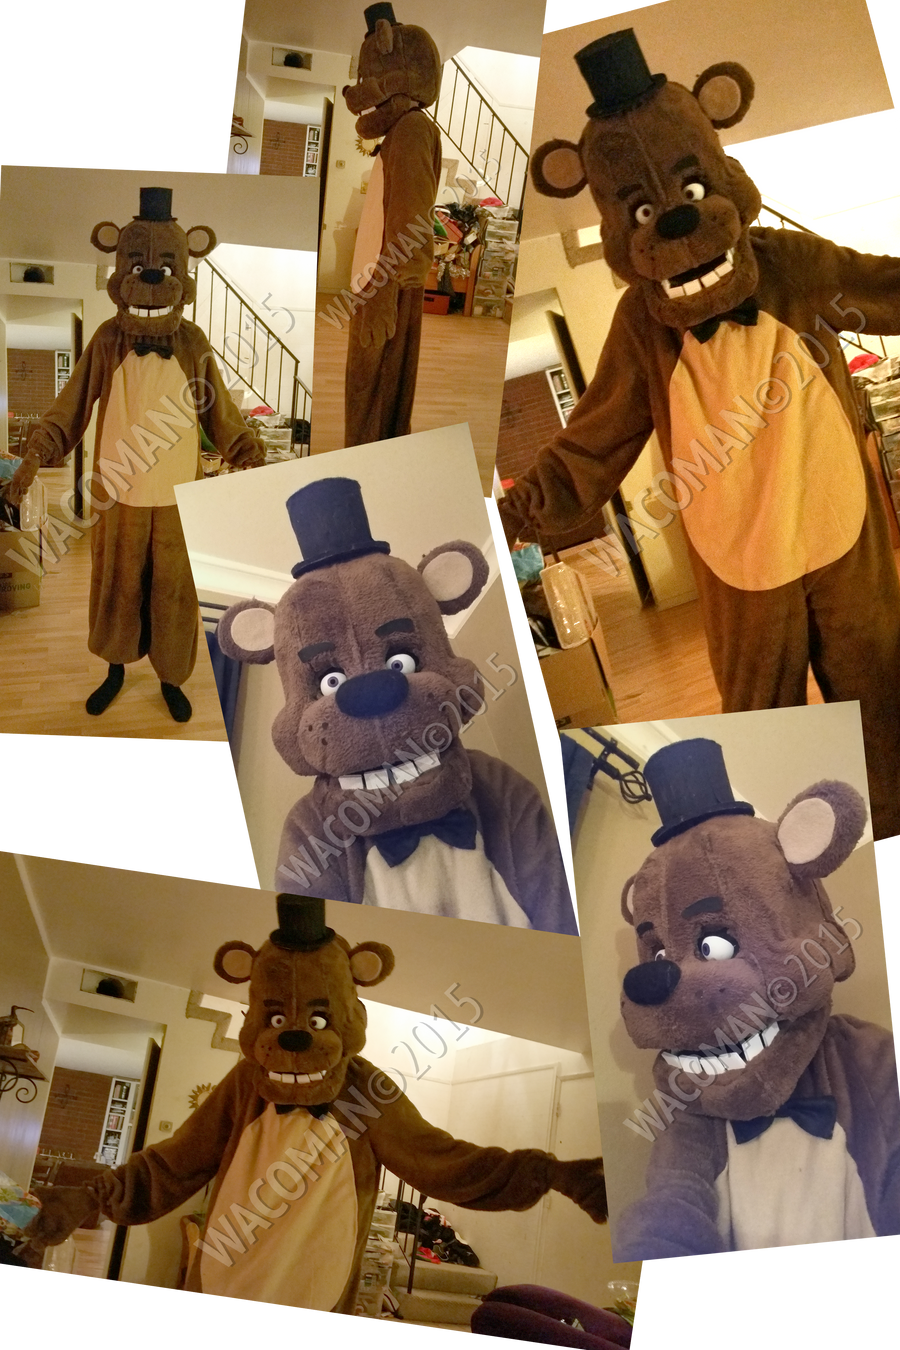 Freddy Fazbear Costume by The-HT-Wacom-Man